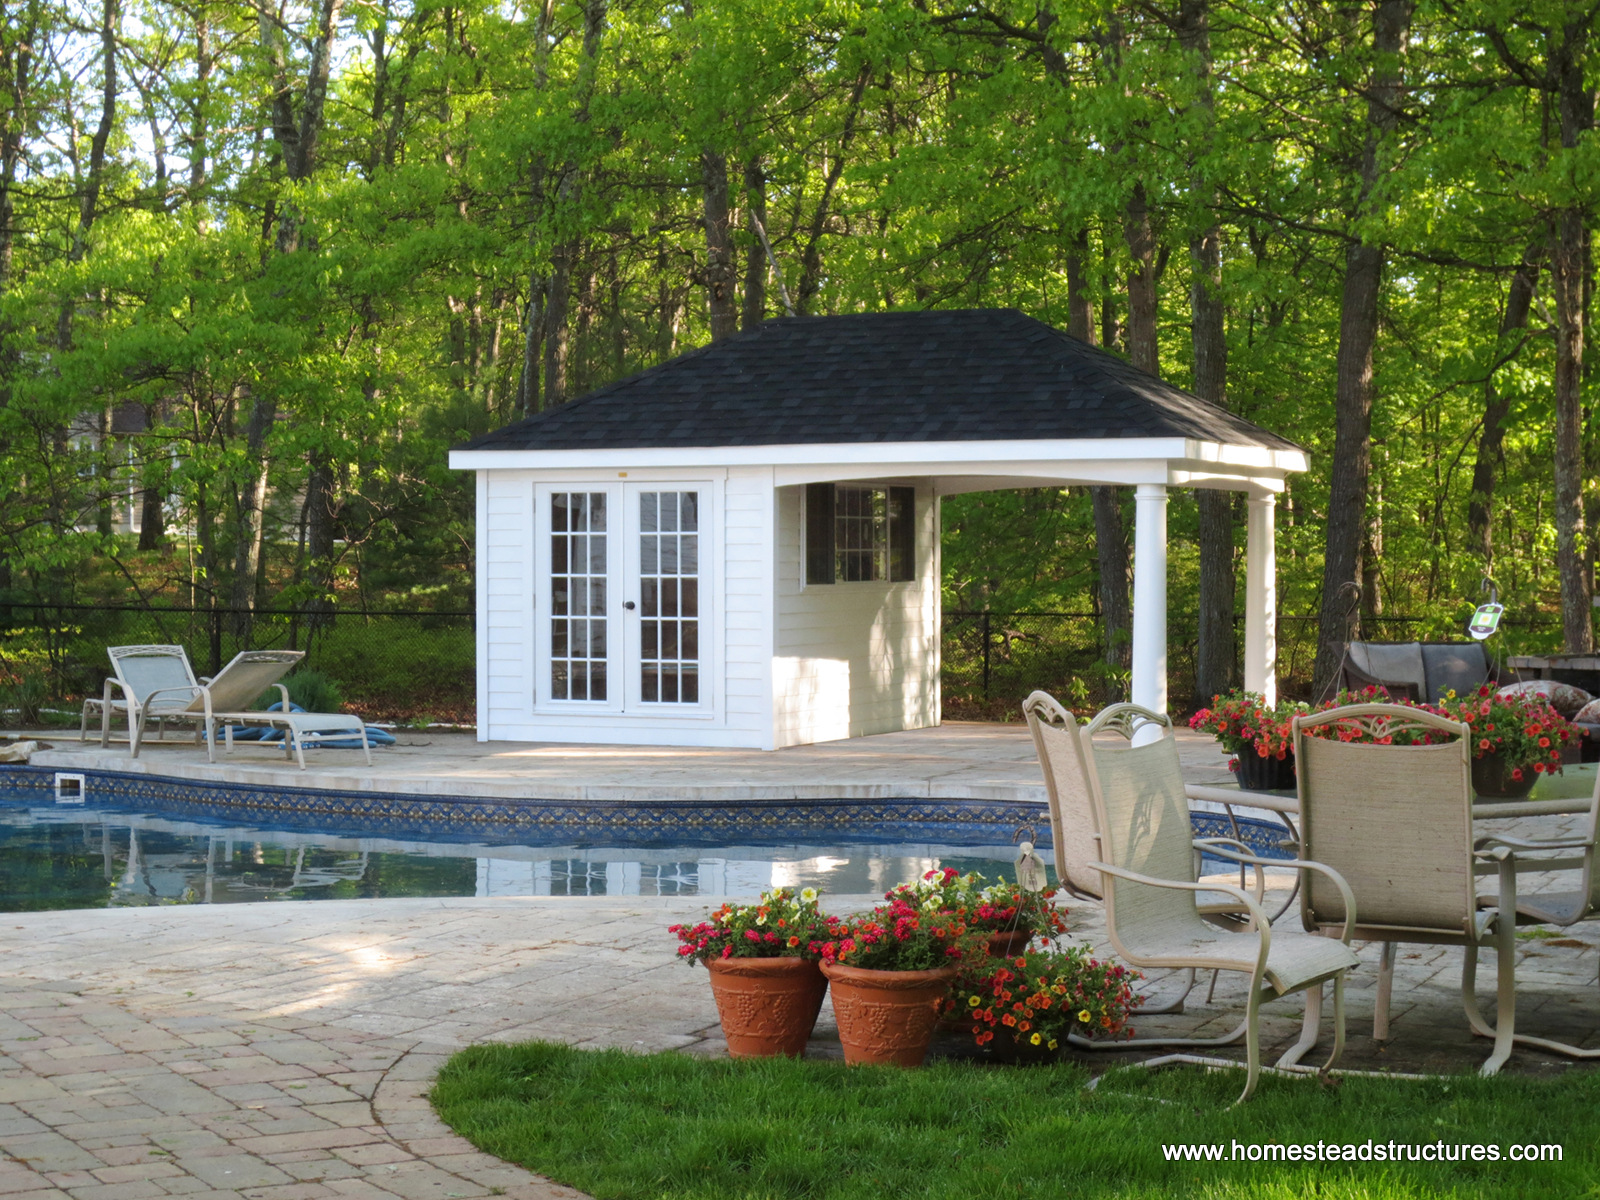 Ordinary Pool Houses With Bathrooms #3: 12u0027 X 18u0027 Avalon Pool House (Hardie Plank ...